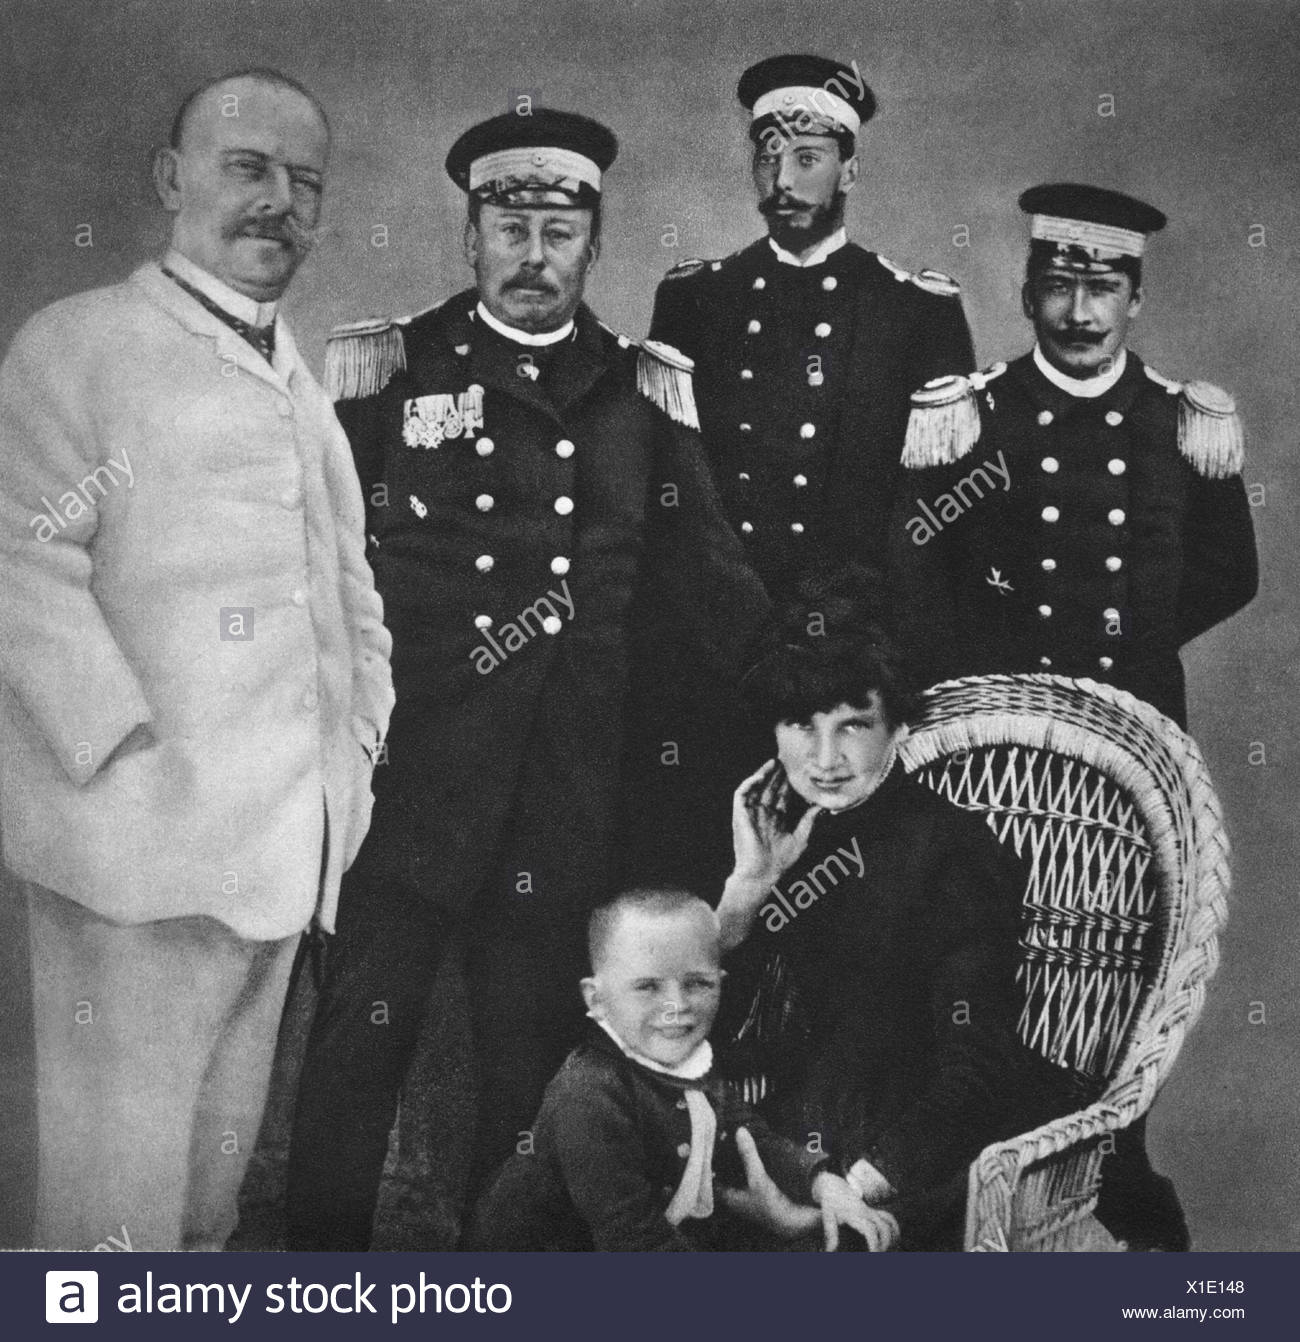 Goering, Hermann, 12.1.1893 - 15.10.1946, German politician (NSDAP), as child, group picture with his parents and officers of the 'SMS Carola', photo before 1900, Additional-Rights-Clearances-NA - Stock Image